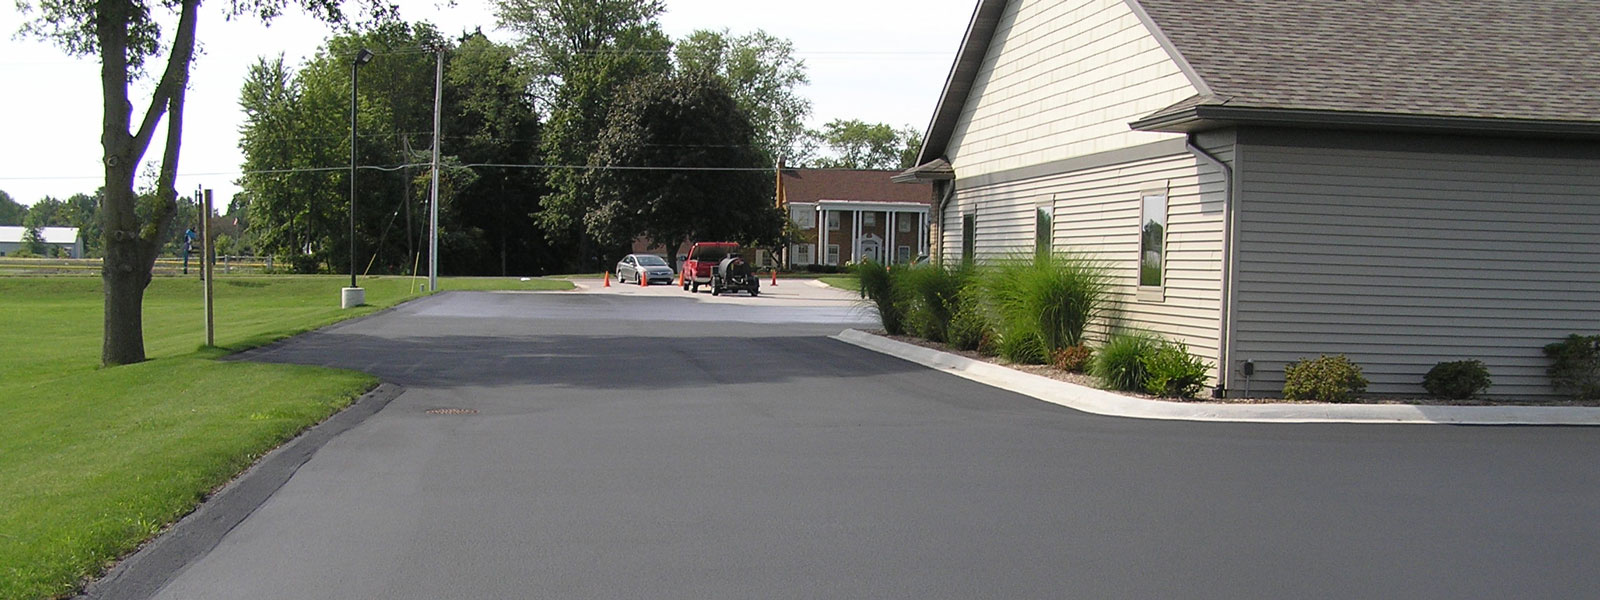 Asphalt sealcoating service for parking lots and driveways in Mansitee County and surrounding counties.